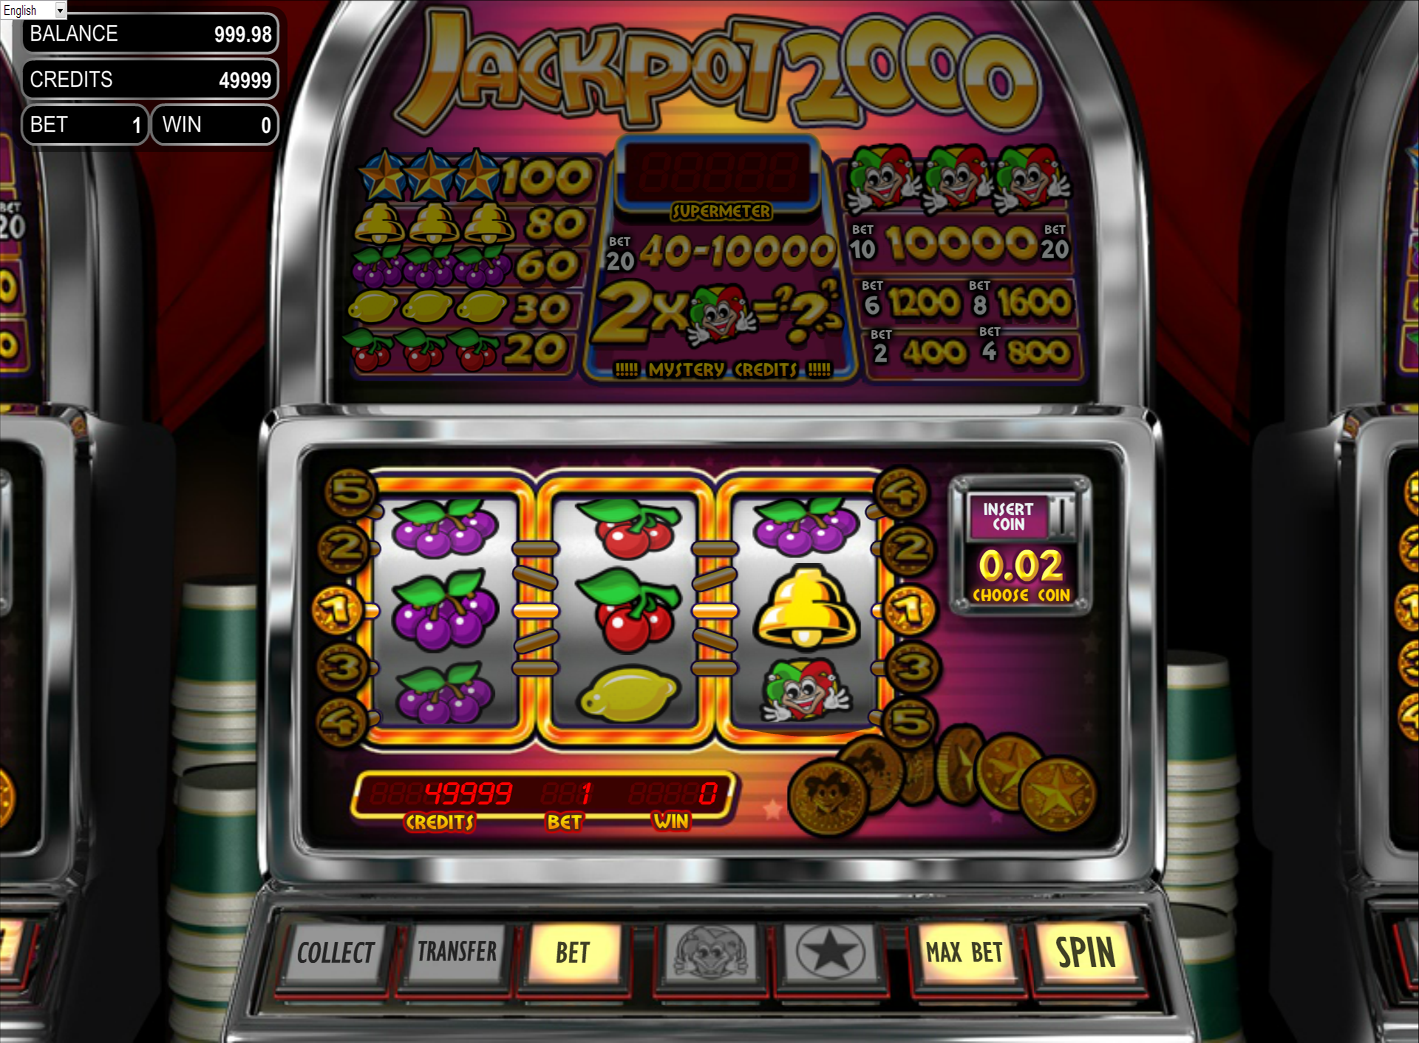 Spectra 2000 Slot Machine - Play for Free With No Download